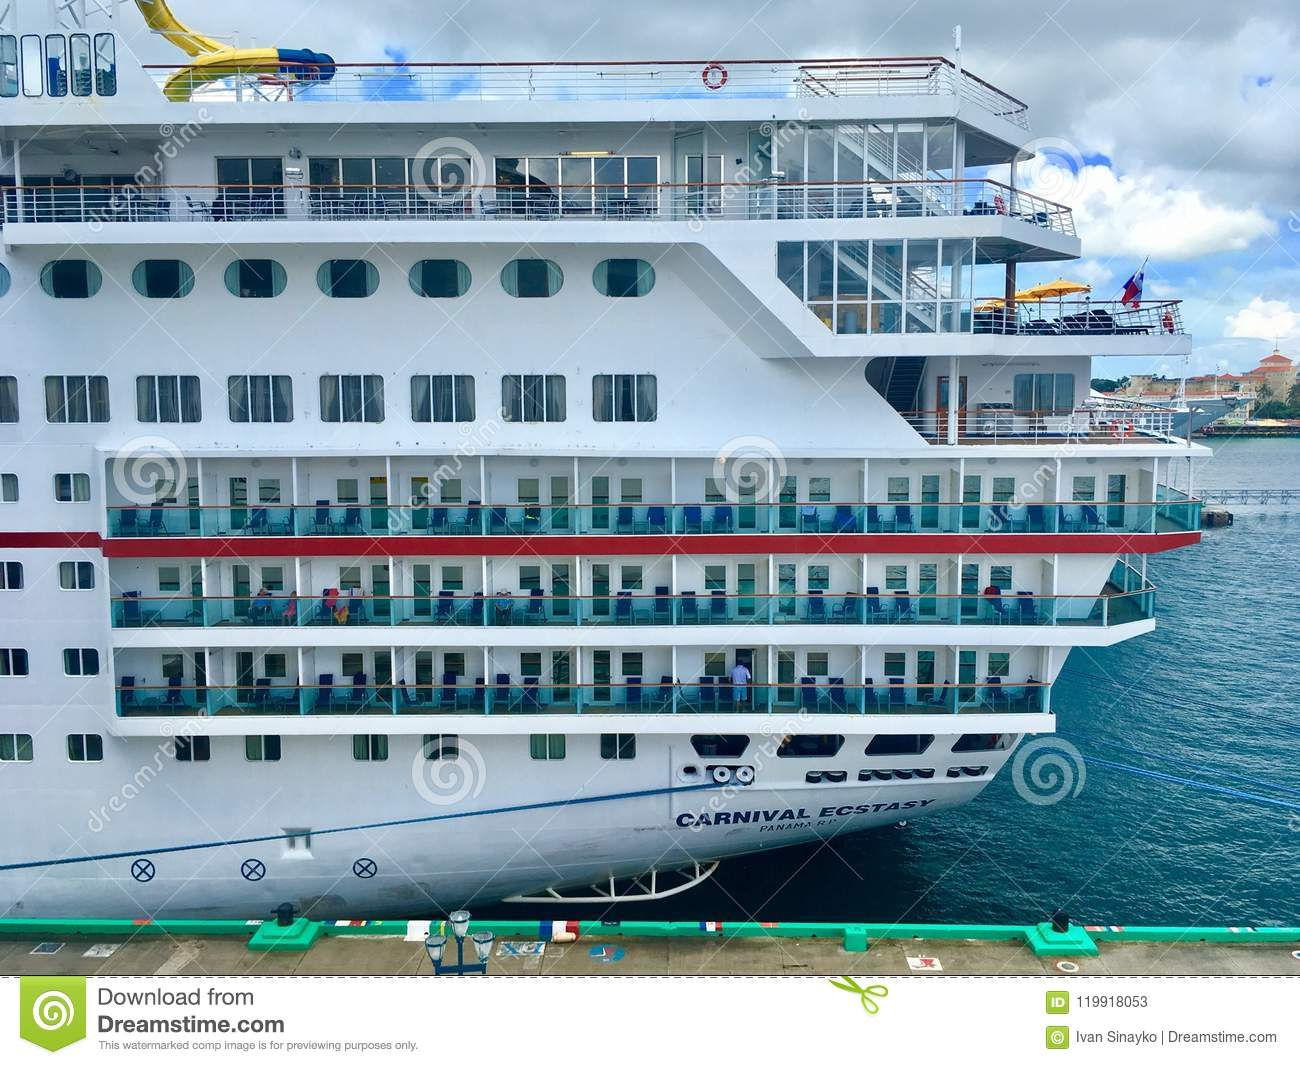 Carnival Ecstasy editorial stock photo. Image of liner - 119918053 on